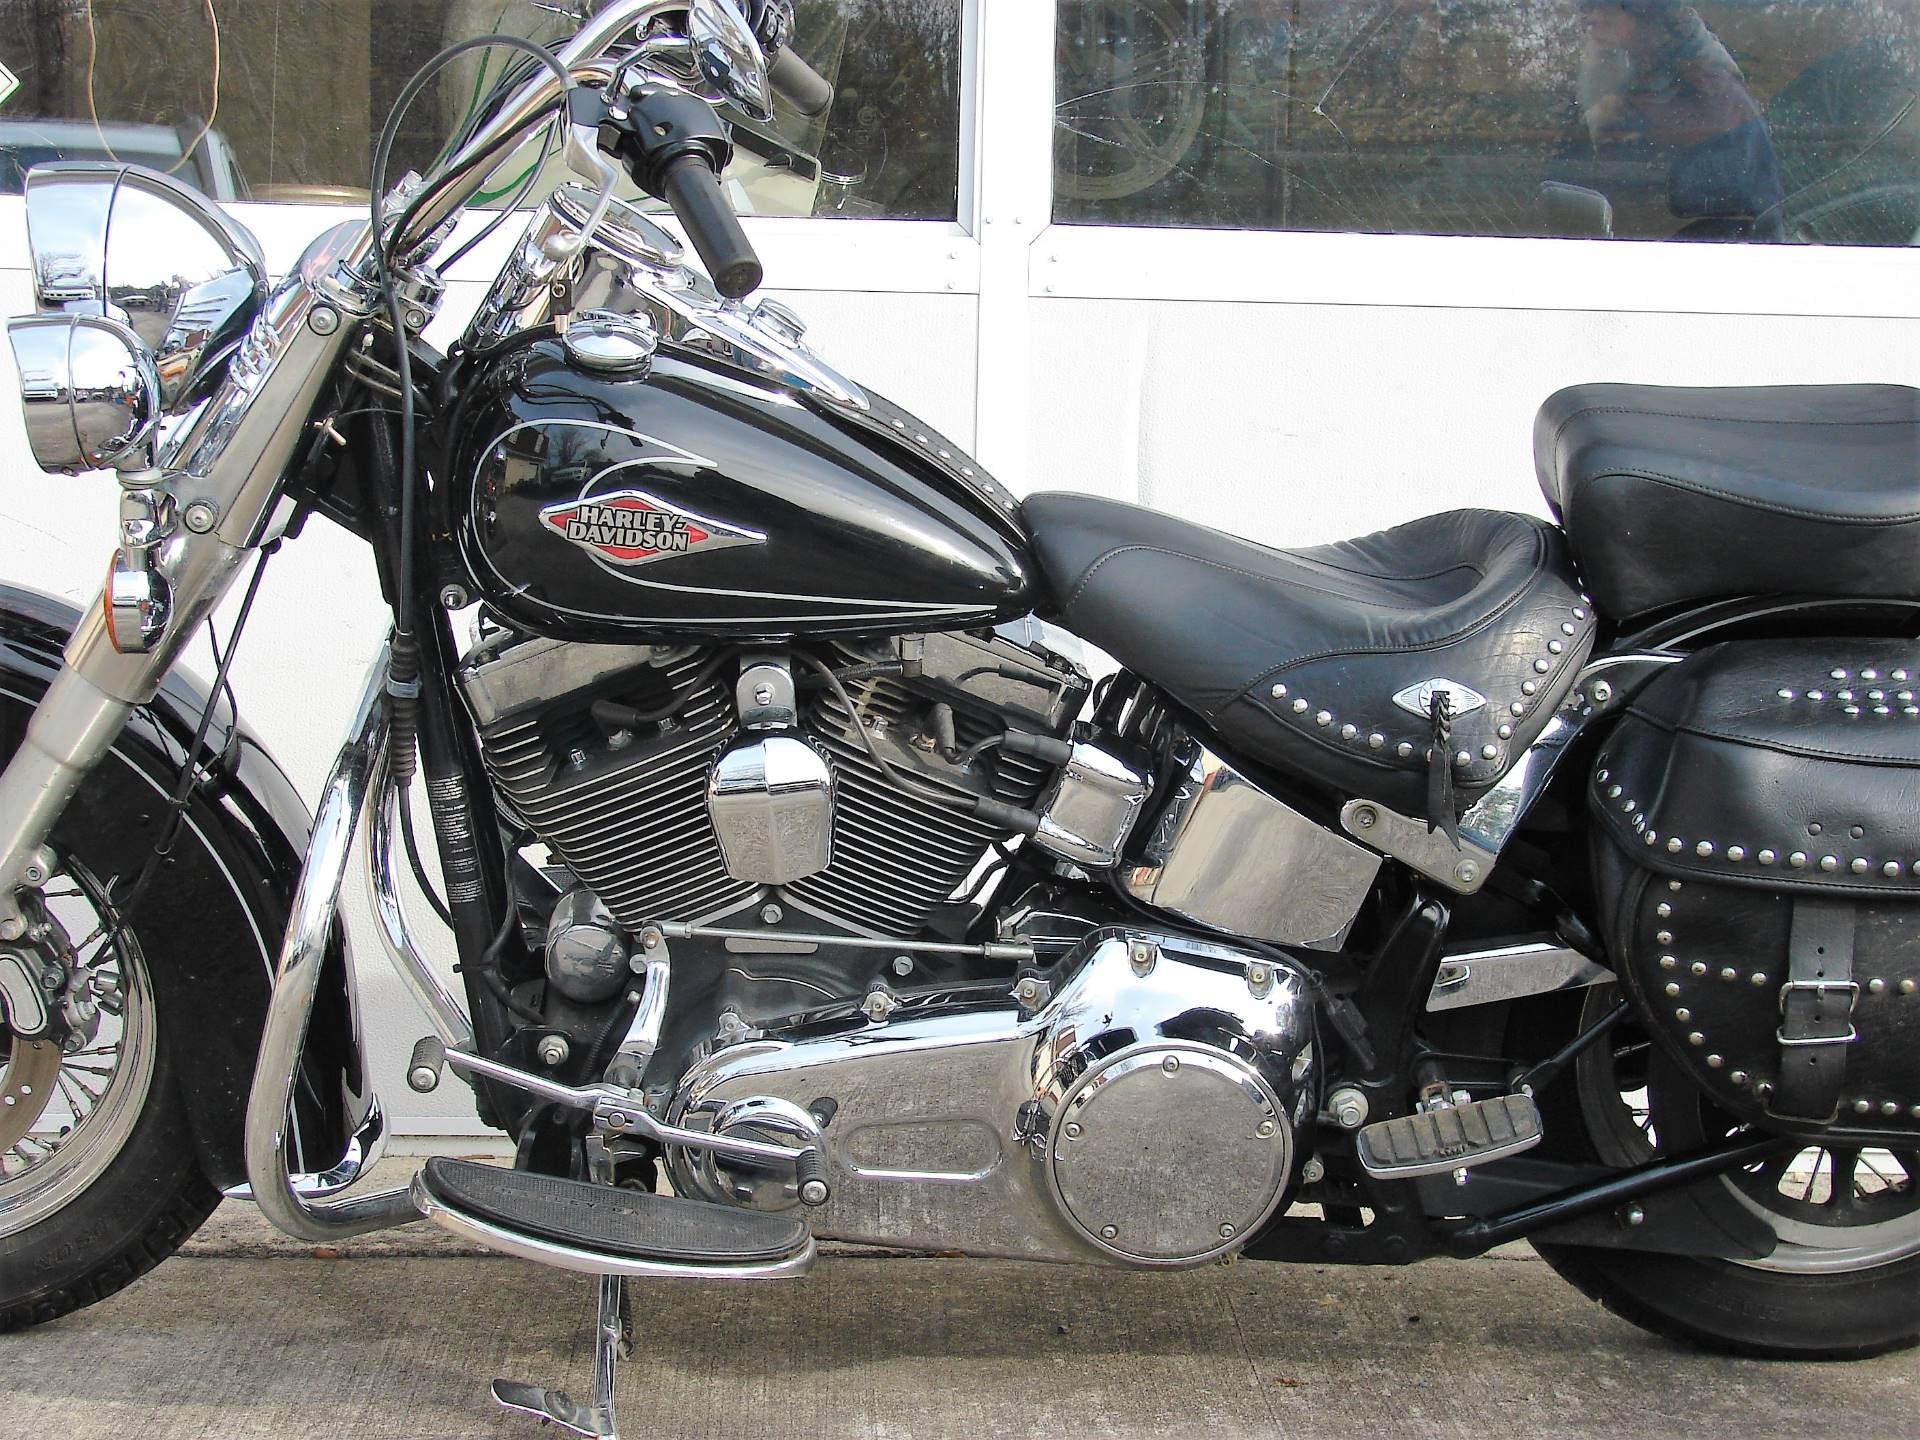 2011 Harley-Davidson FLSTC Heritage Softail in Williamstown, New Jersey - Photo 8